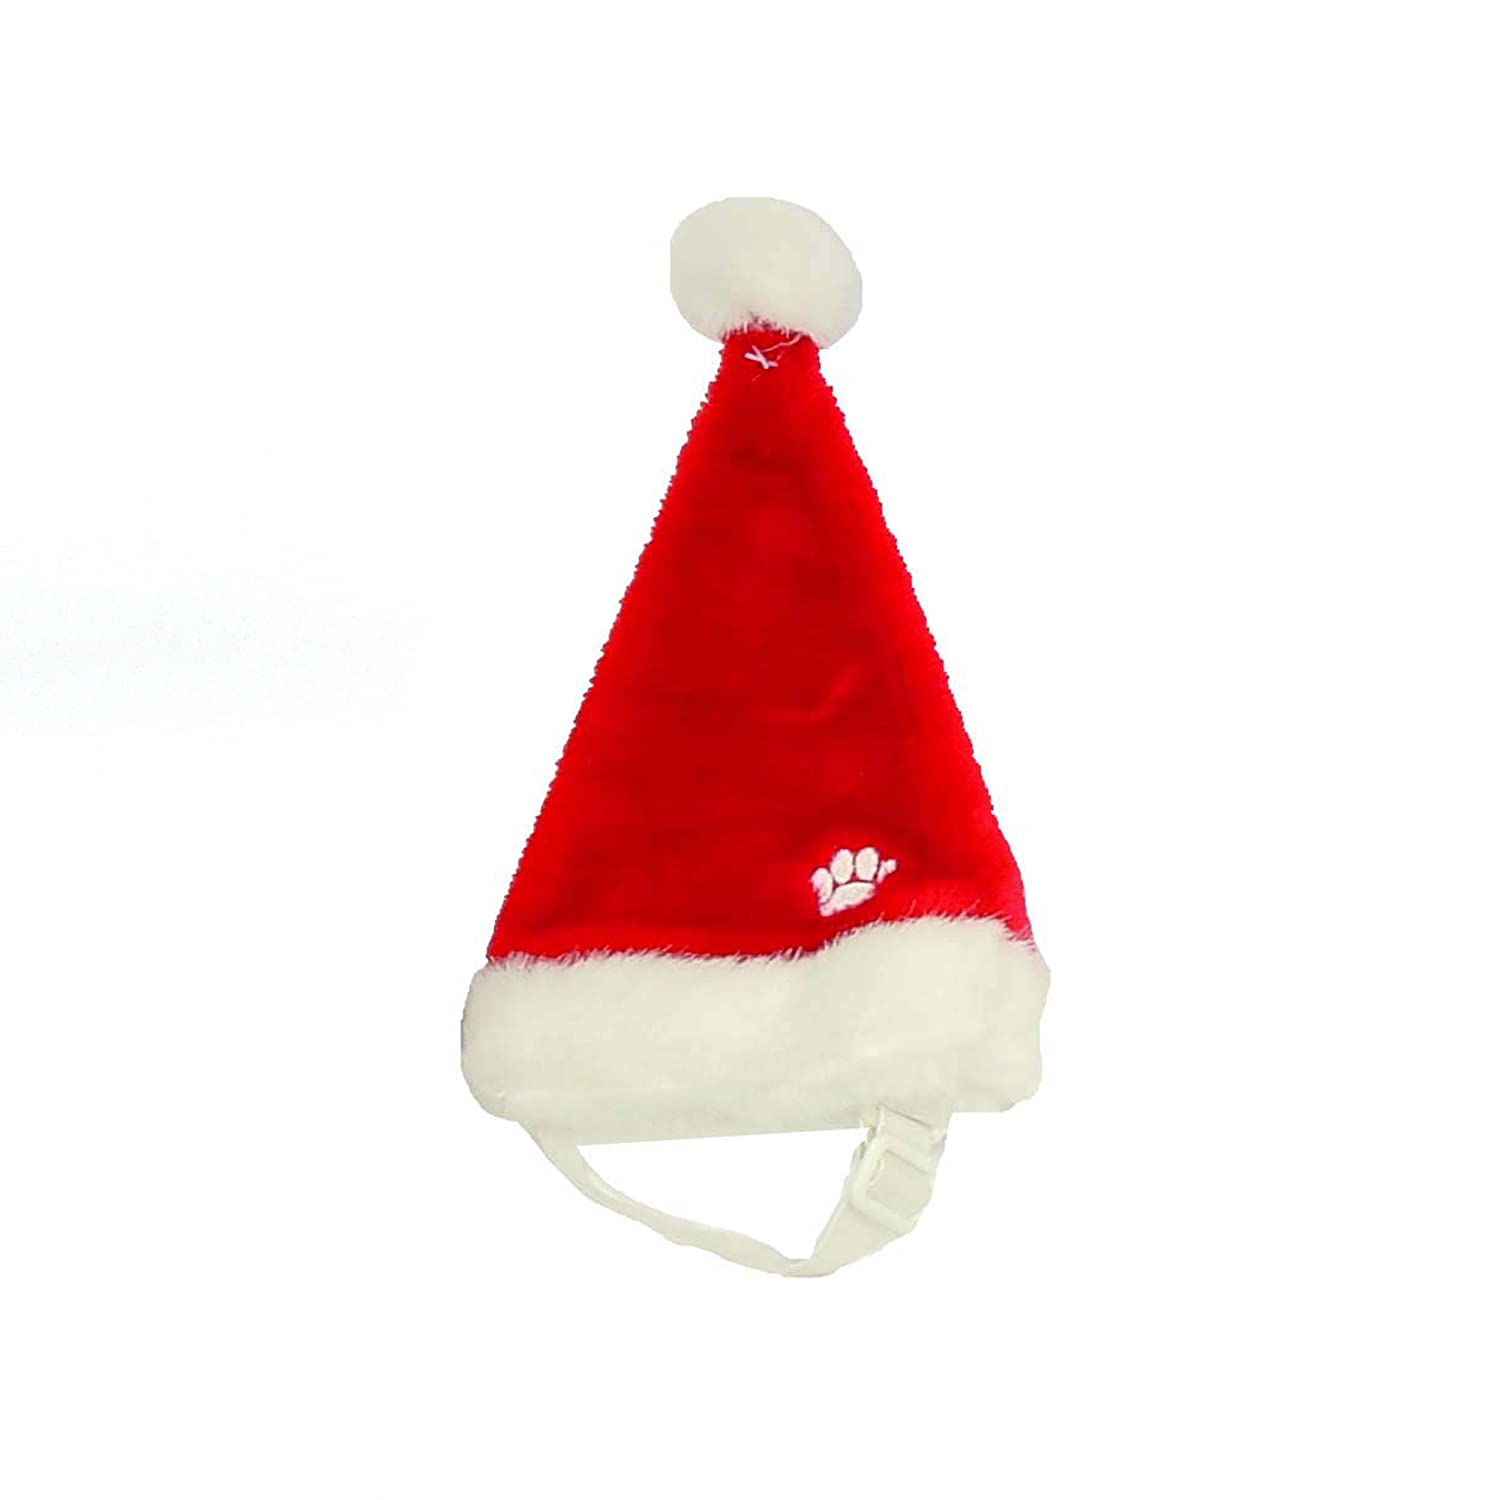 Outward Hound Dog Santa Hat Holiday and Christmas Pet Accessory, Red